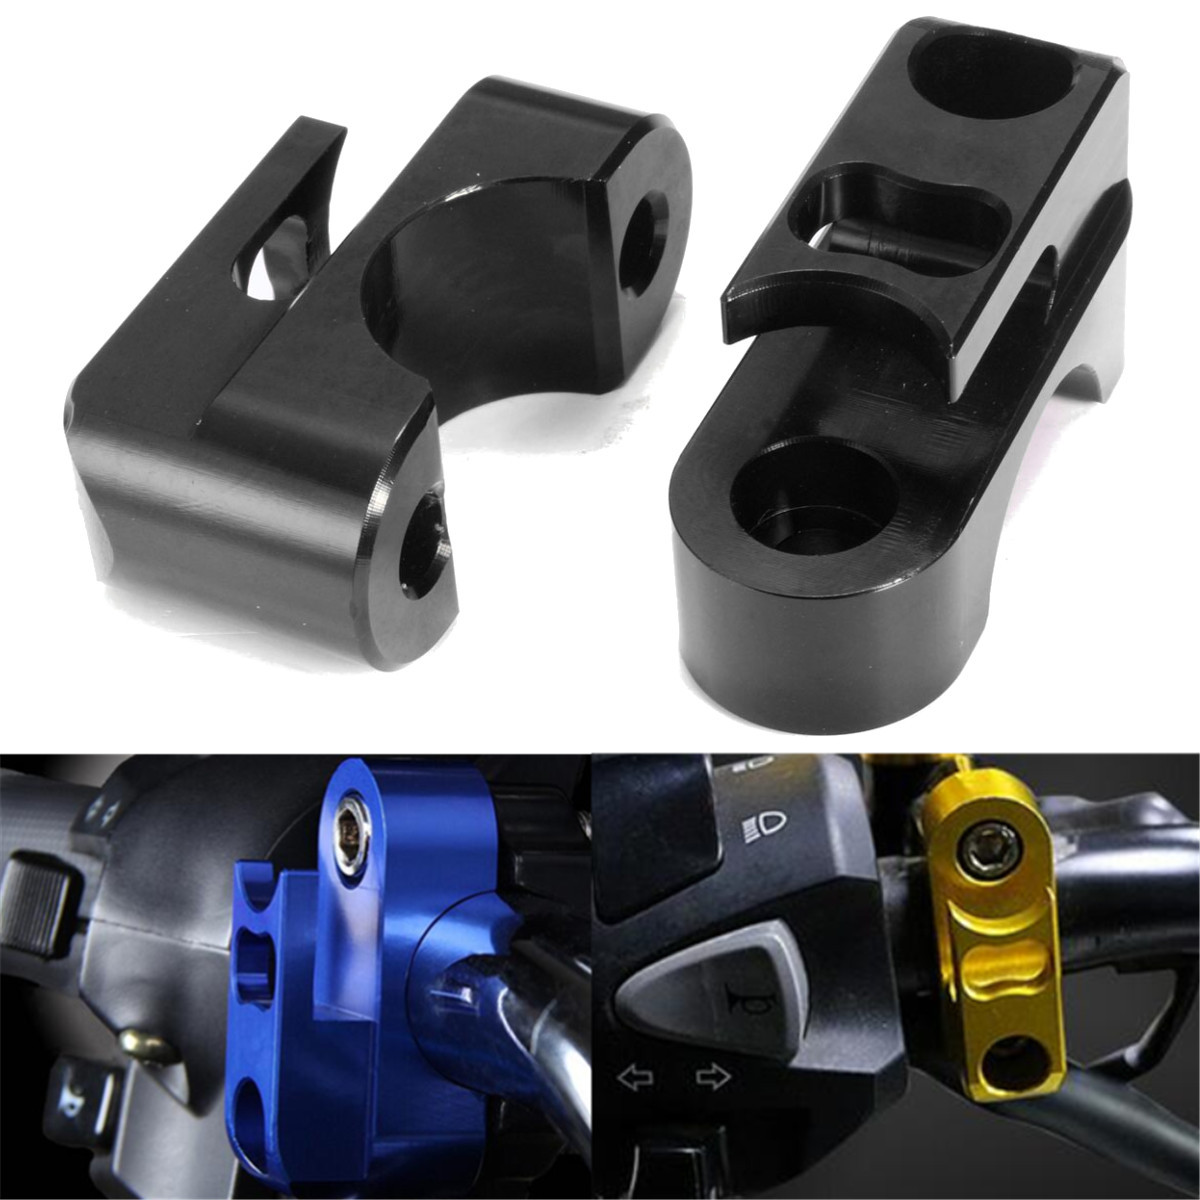 22mm 7/8inch Handlebar Luggage Bag Hanger CNC Hook Holder Clamp Universal